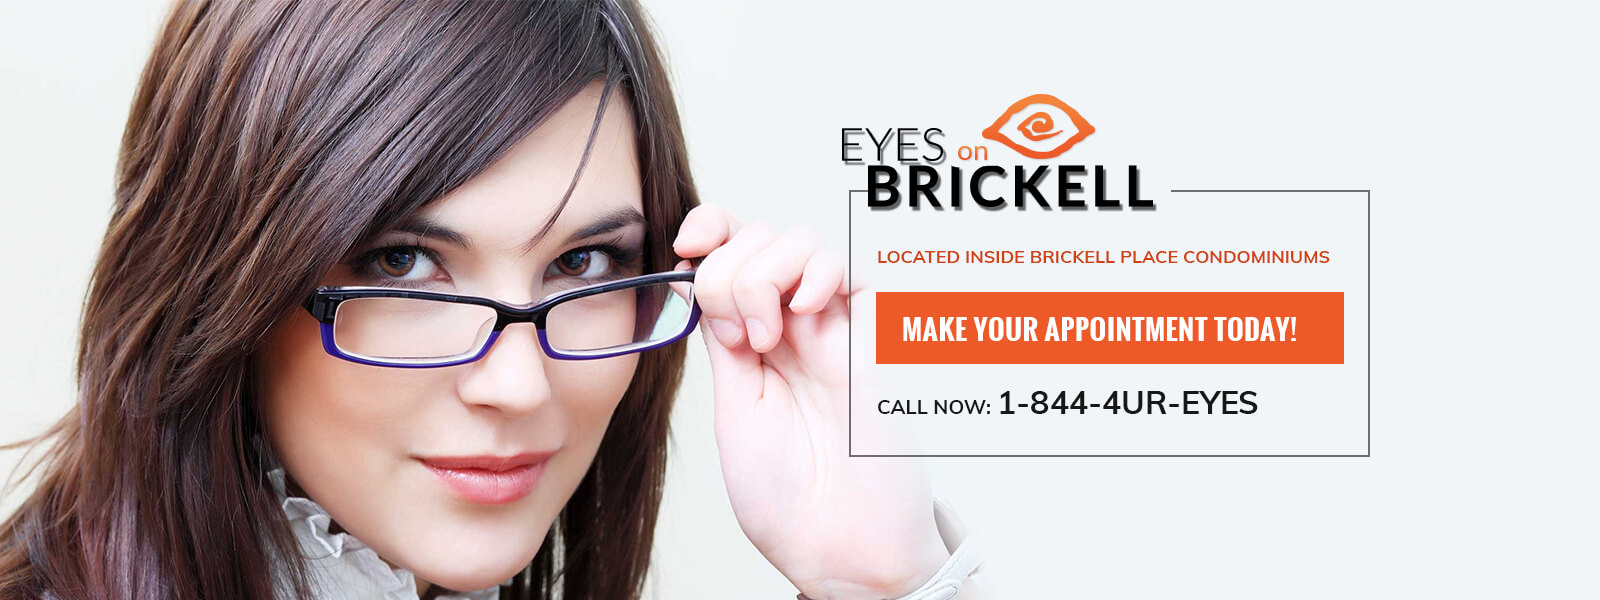 Florida Eyecare Associates - Make Your Appointment Today.